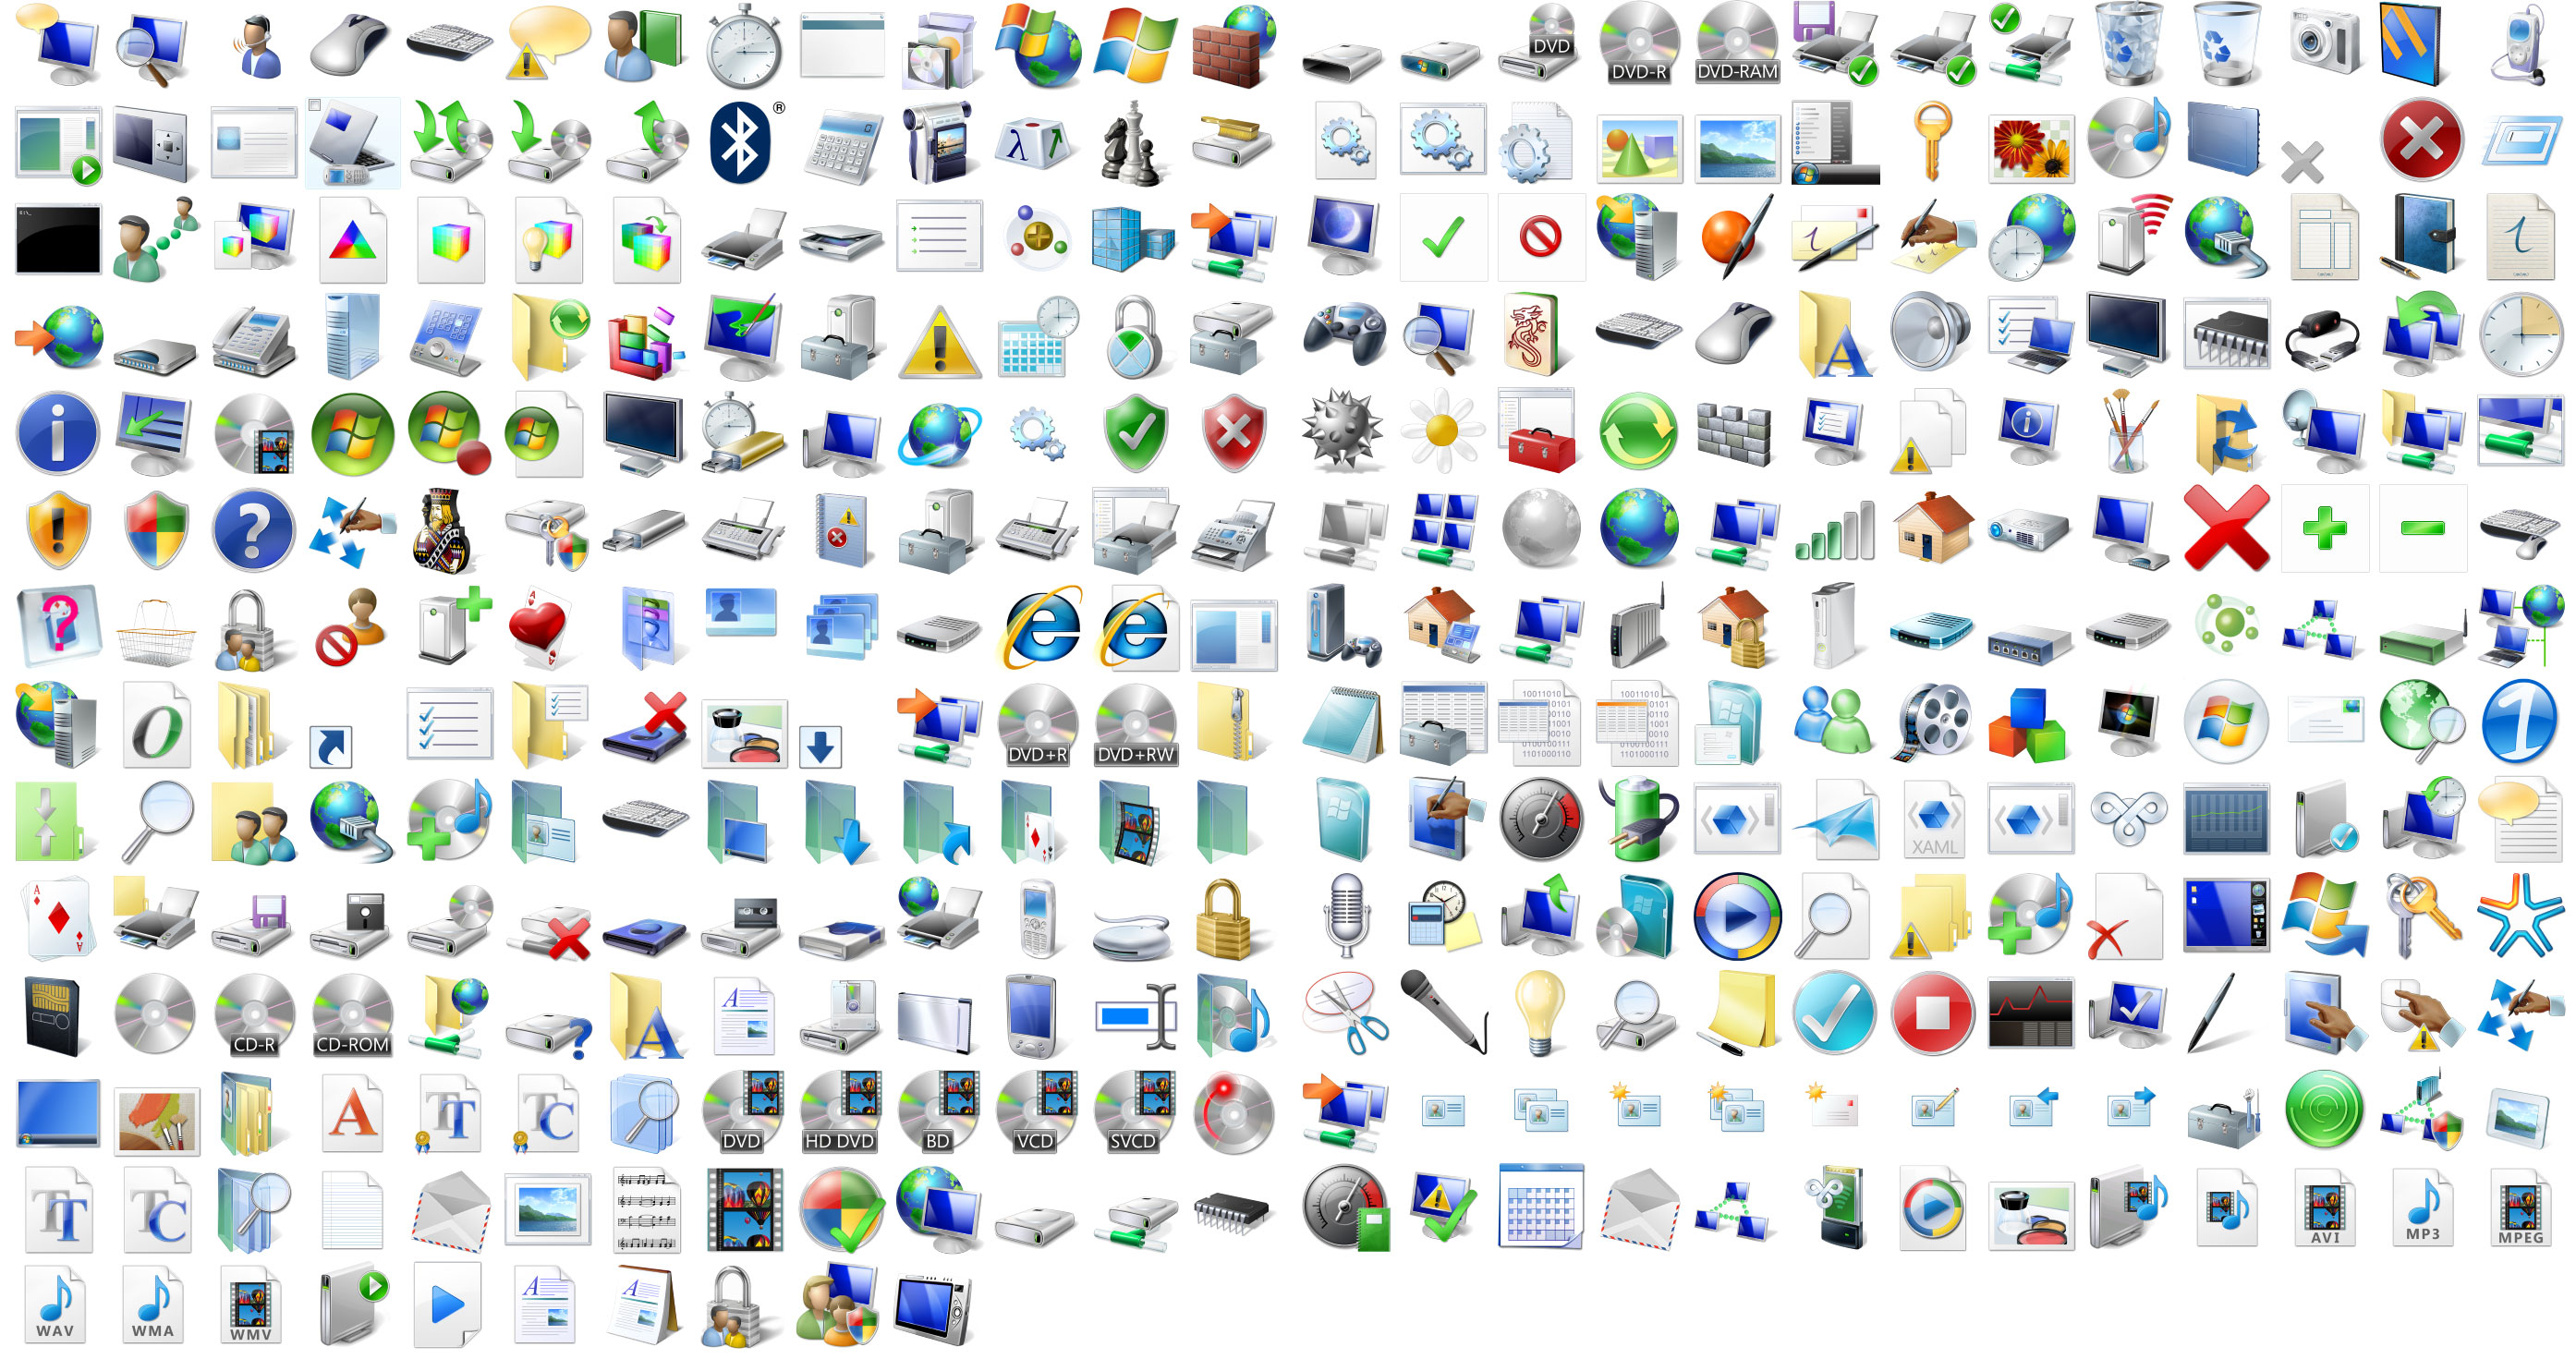 18 Get New Icons For Windows Images